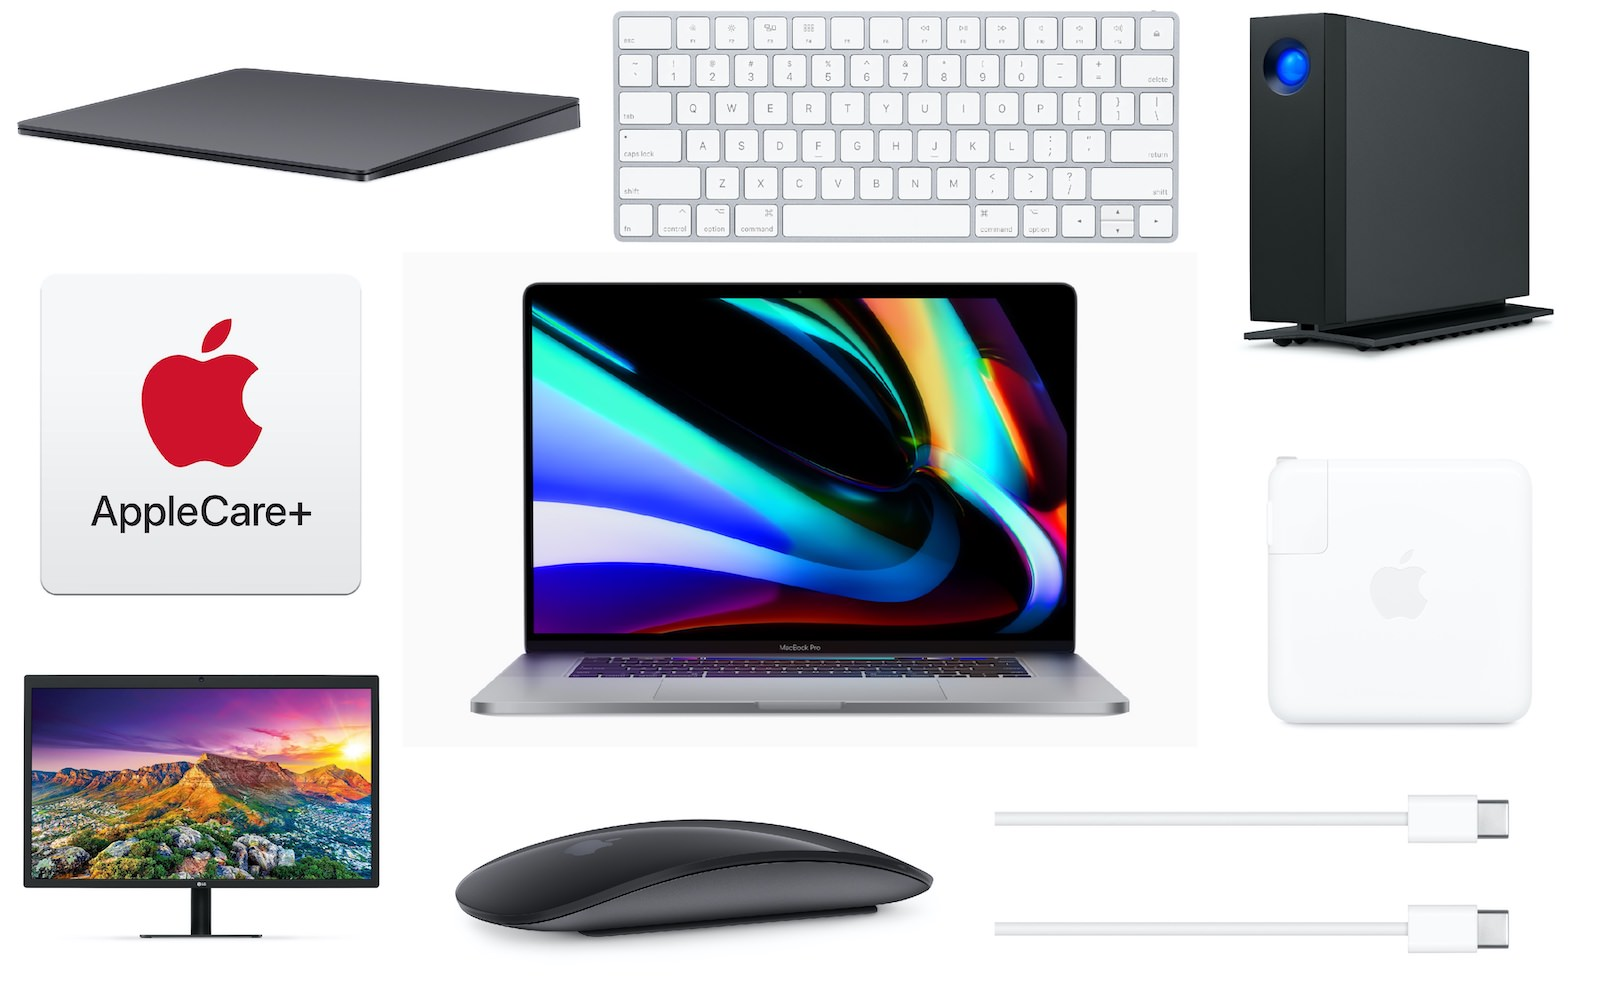 What to buy at apple for mbp16